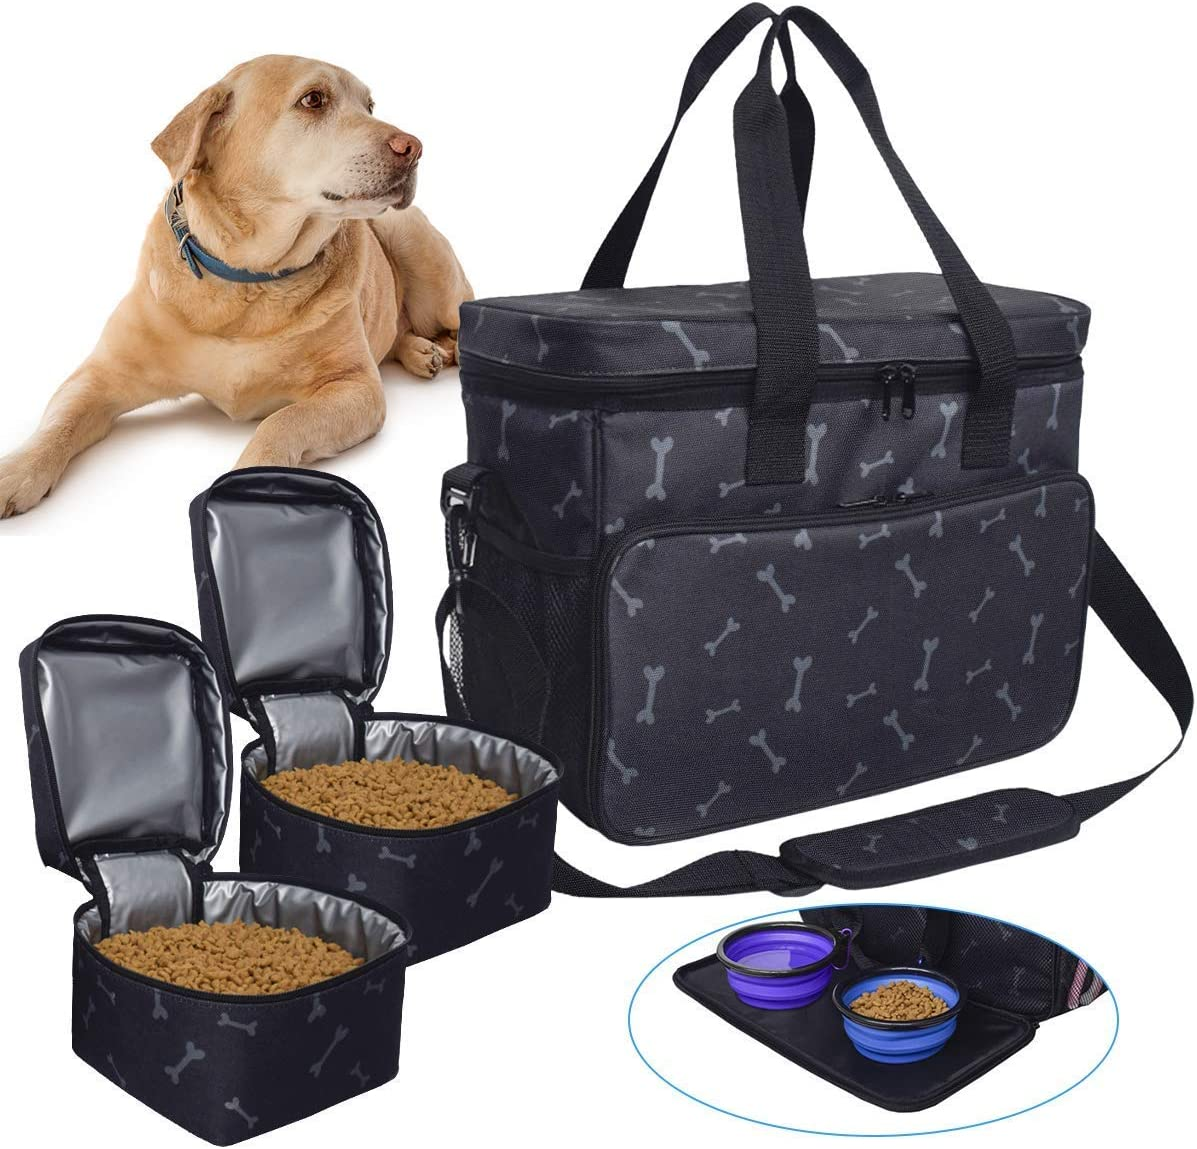 BicycleStore Dog Travel Bag, Washable Pet Food Carrier Storage Bags Cat Treat Diaper Carrying Bag Accessories Equipment Sling Bag Organizer with Multi-Function Pockets 2 Food Storage Containers